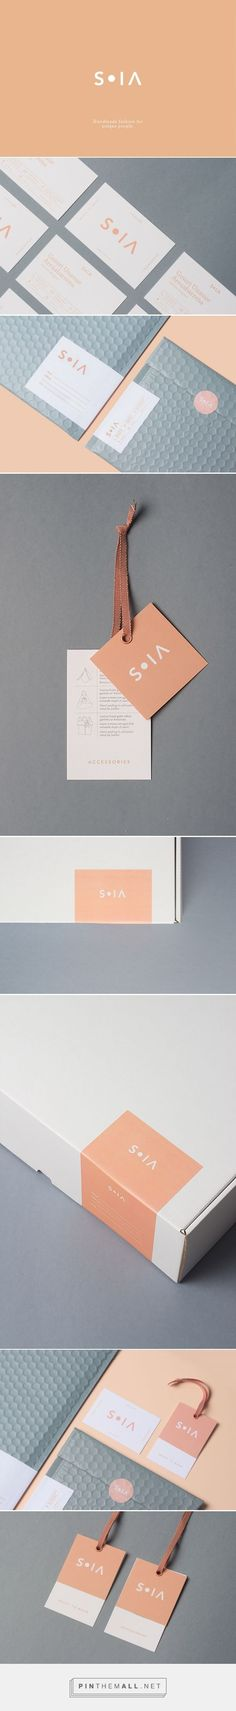 SOIA Corporate Design - Mindsparkle Mag... - a grouped images picture - Pin Them All